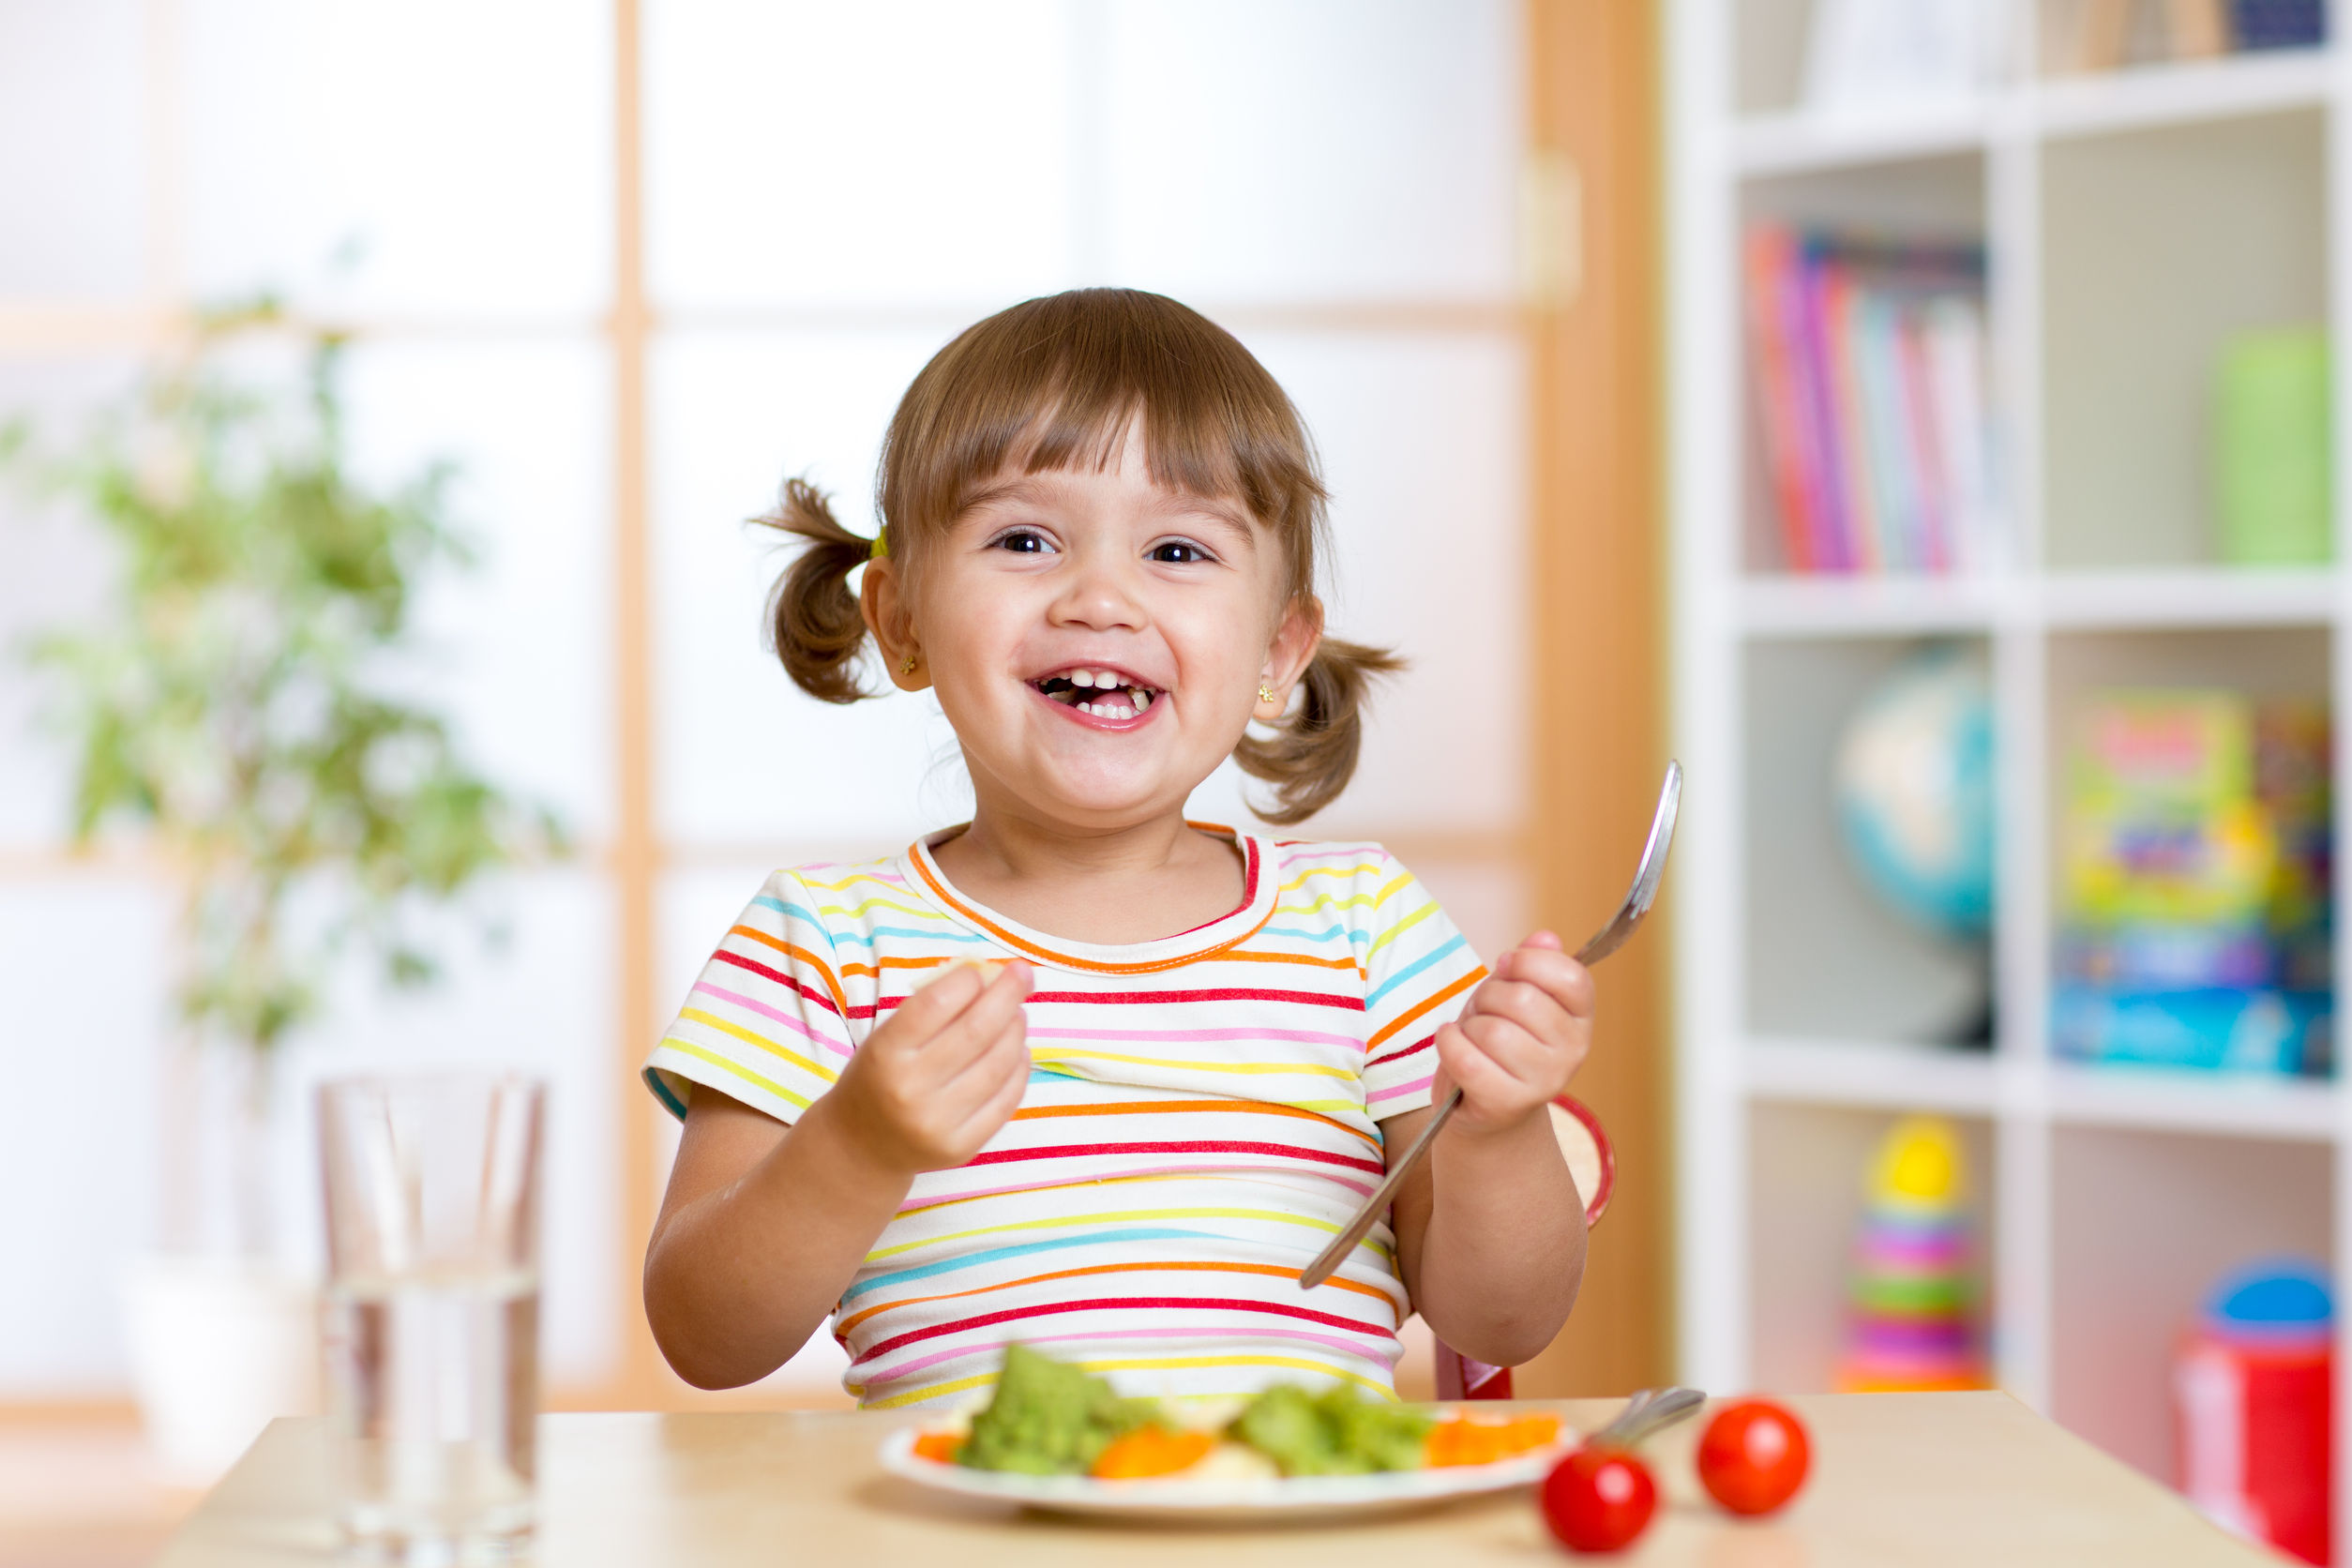 3 Simple Tricks That Will Make Your Kids Eat Better Child S Play In Action